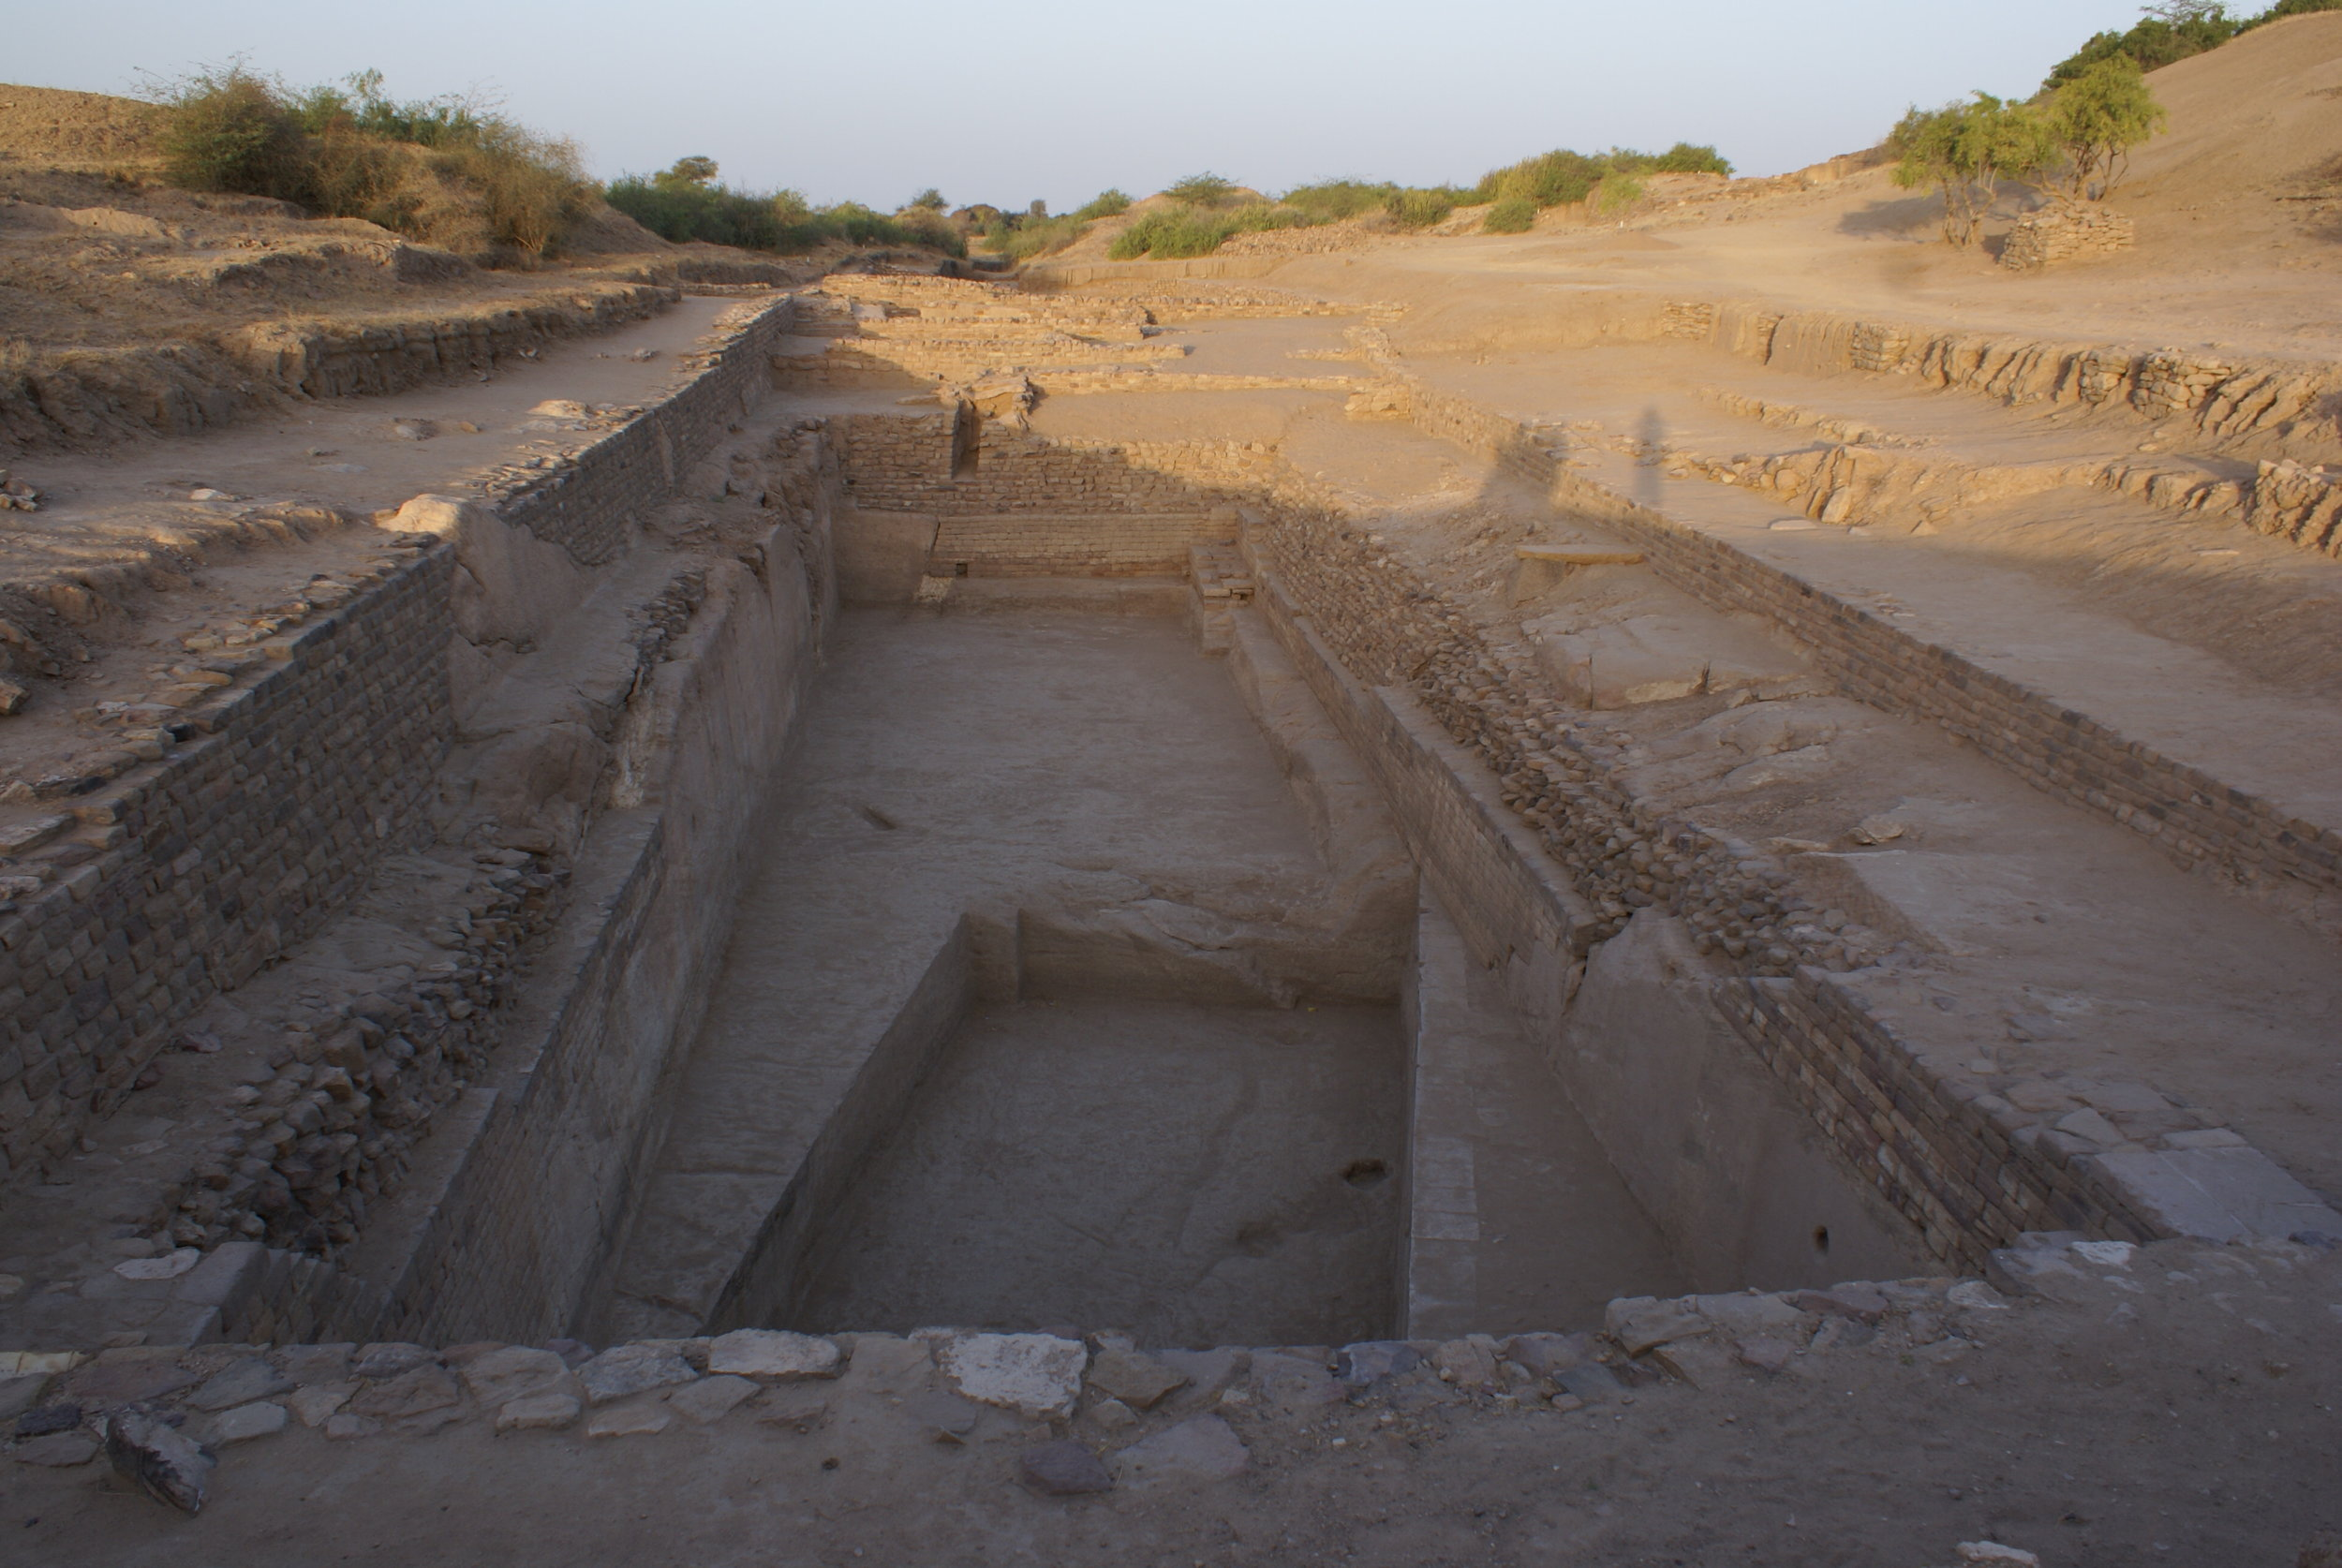 Excavated water-harvesting tank. The entire town was surrounded by these tanks.